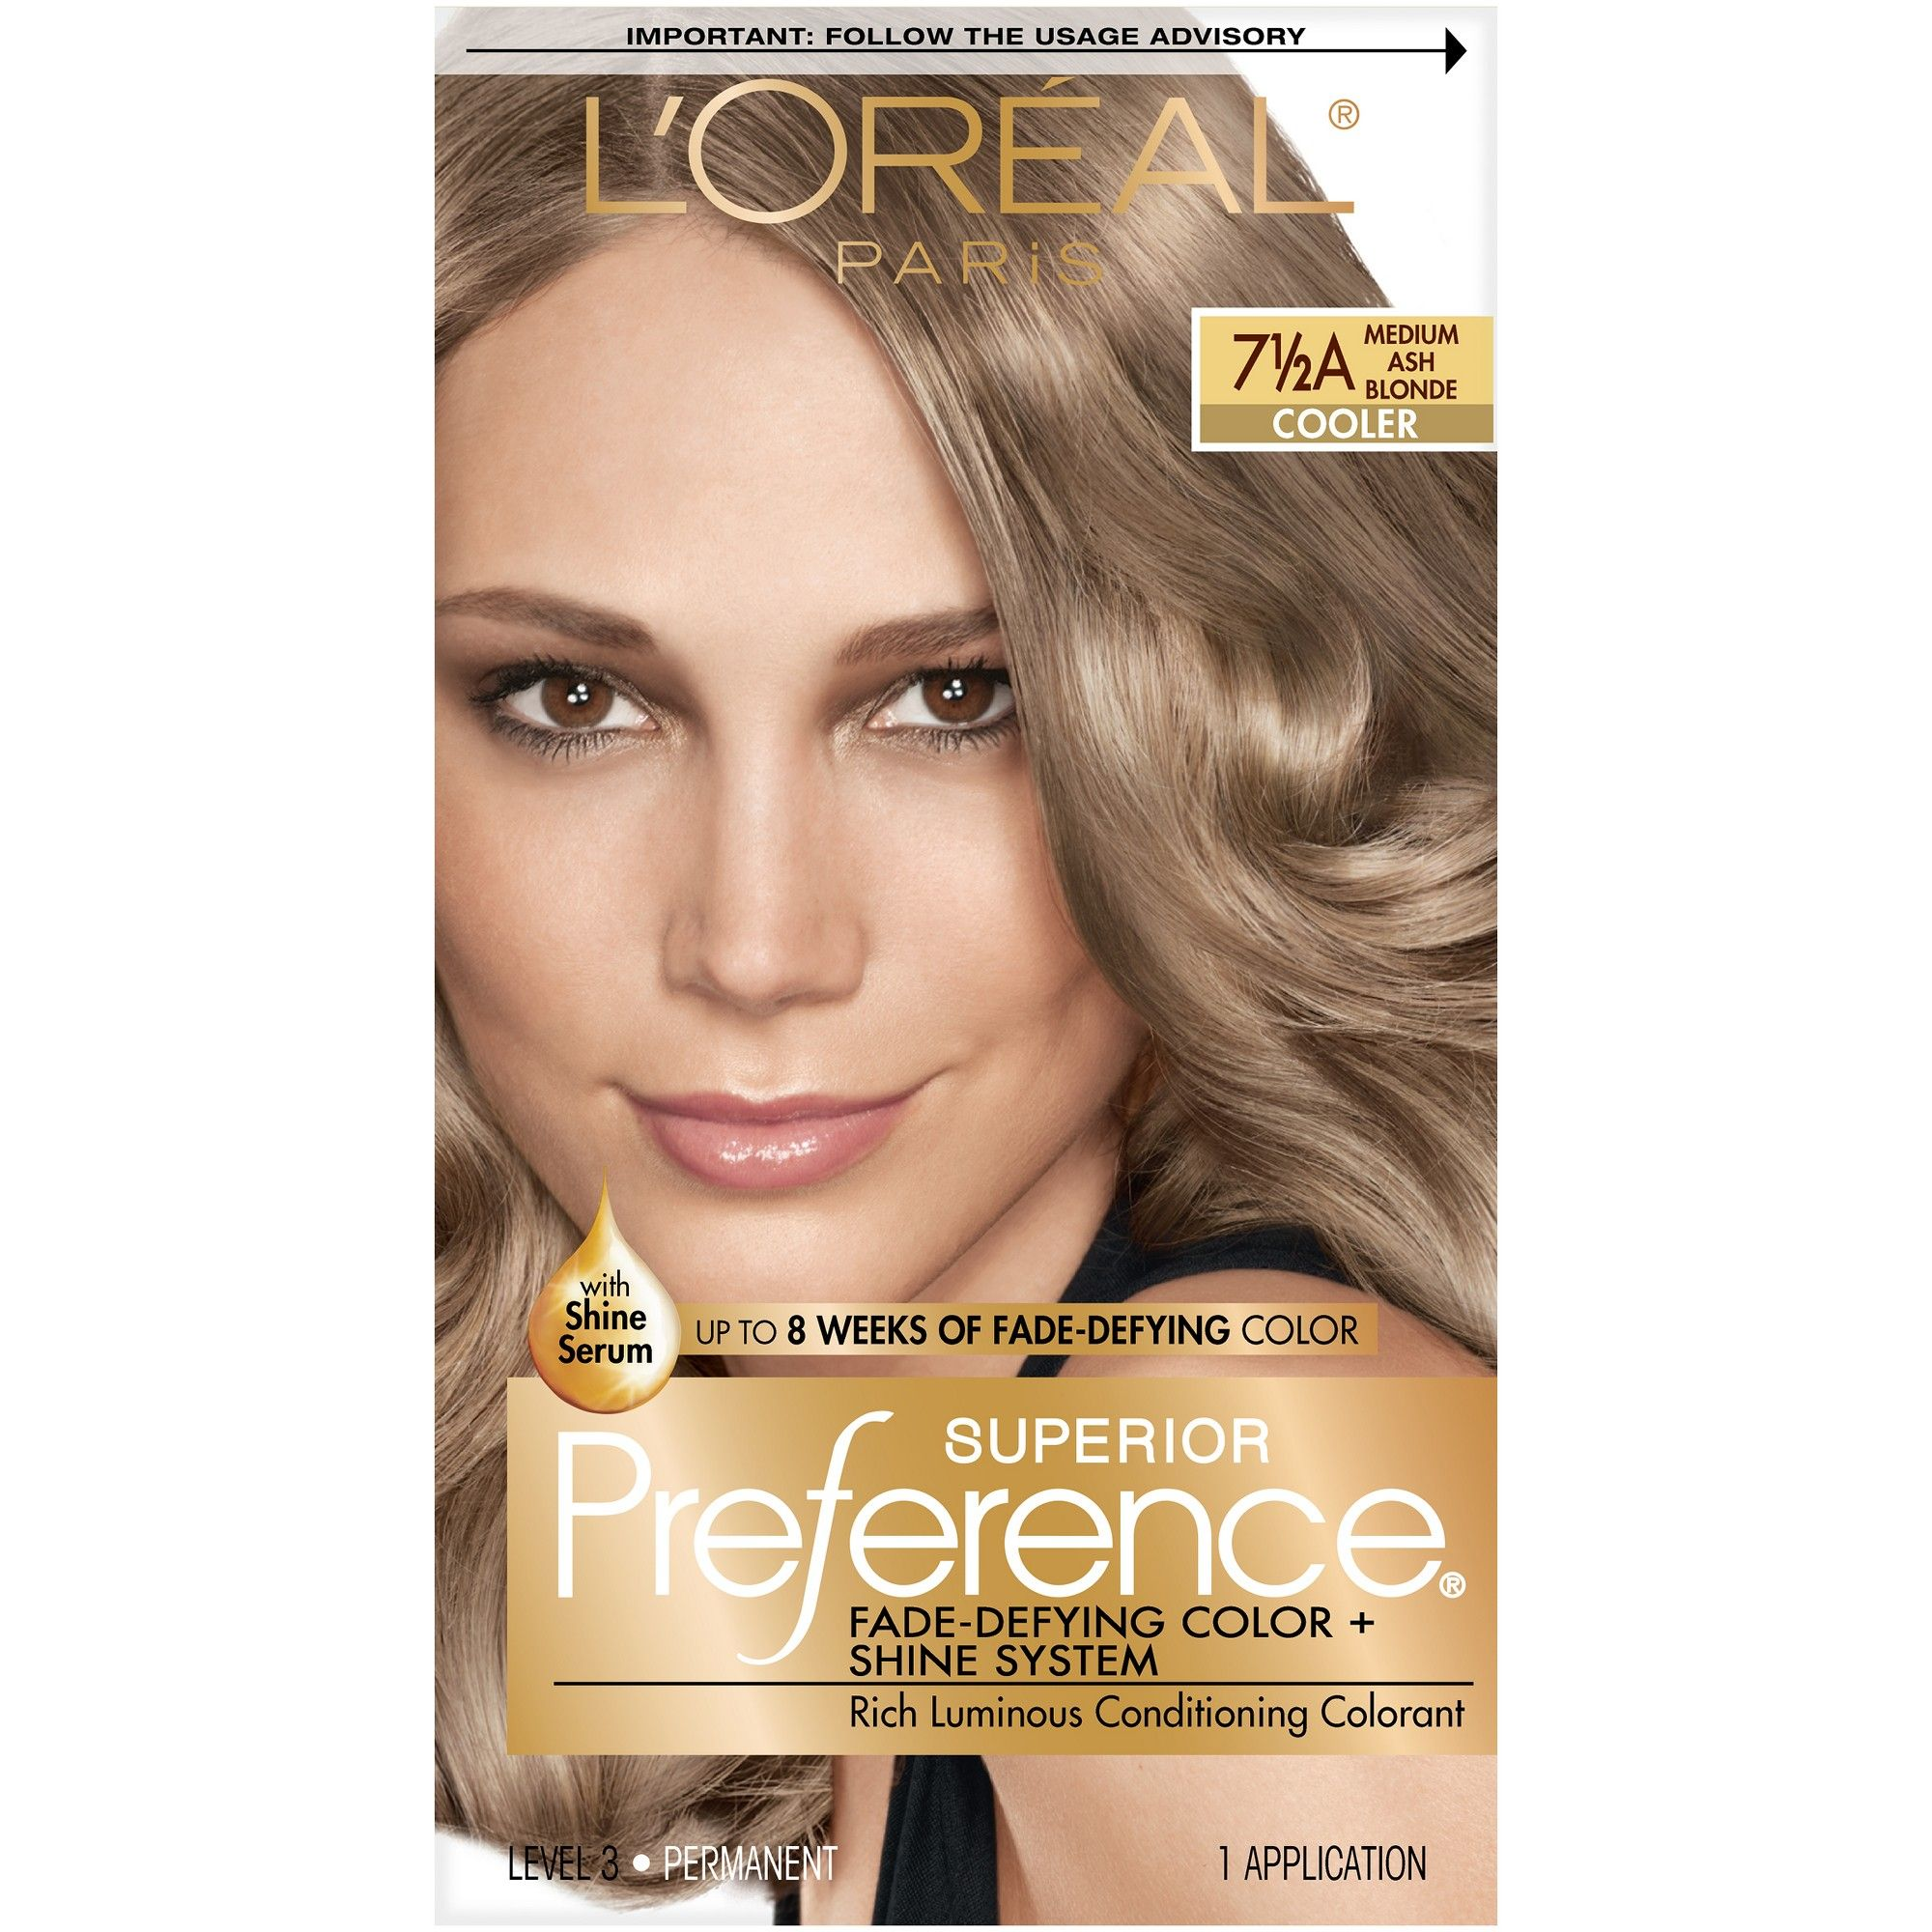 L Oreal Paris Superior Preference Fade Defying Color Shine System 10 Fl Oz 7 5a M Ash Blonde 1 Kit Hair Color Luminous Hair Color Lasting Hair Color